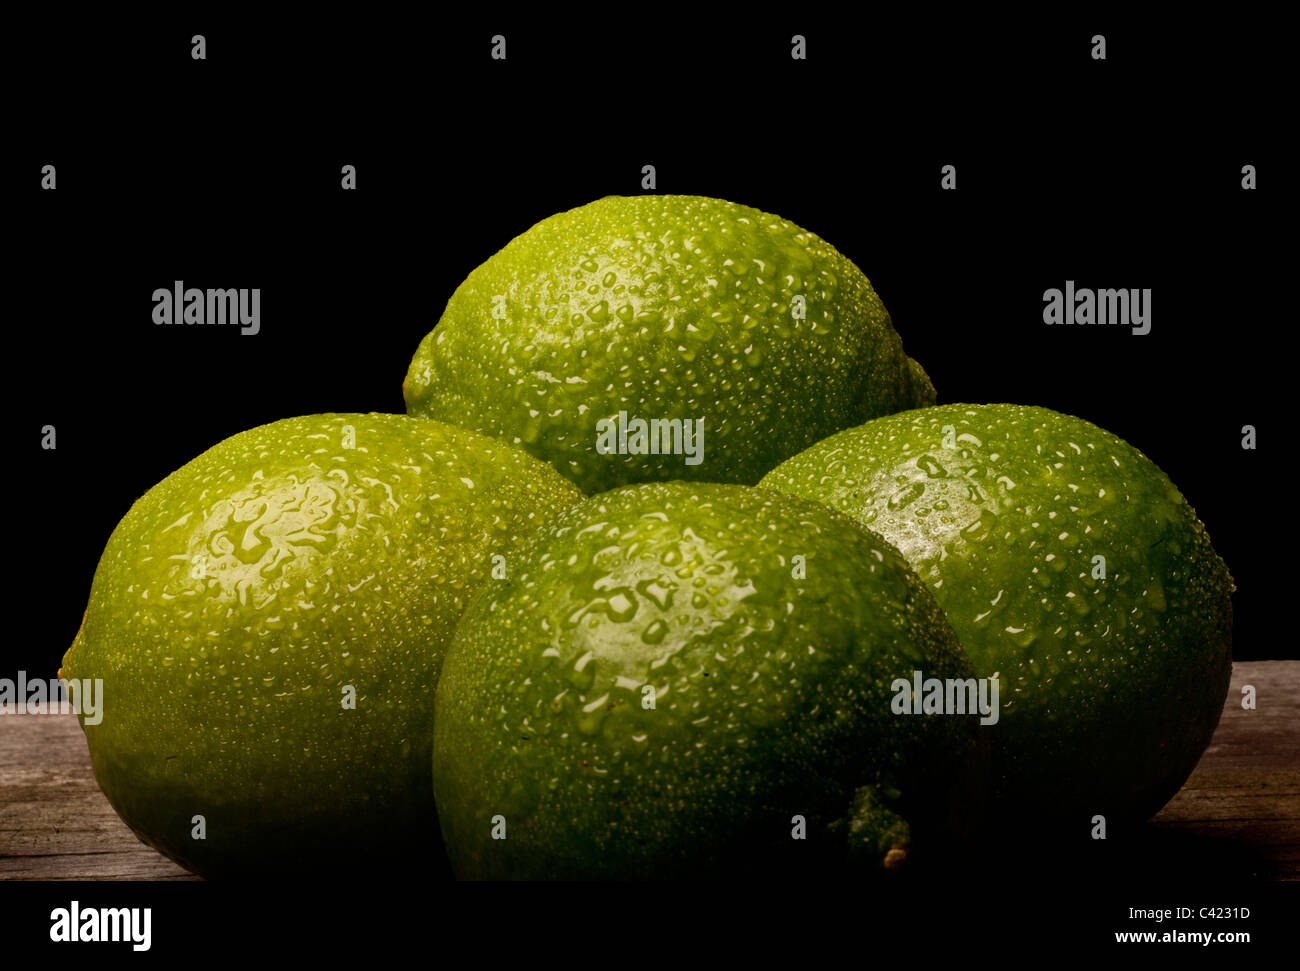 4 Limes on a table, Food - Stock Image